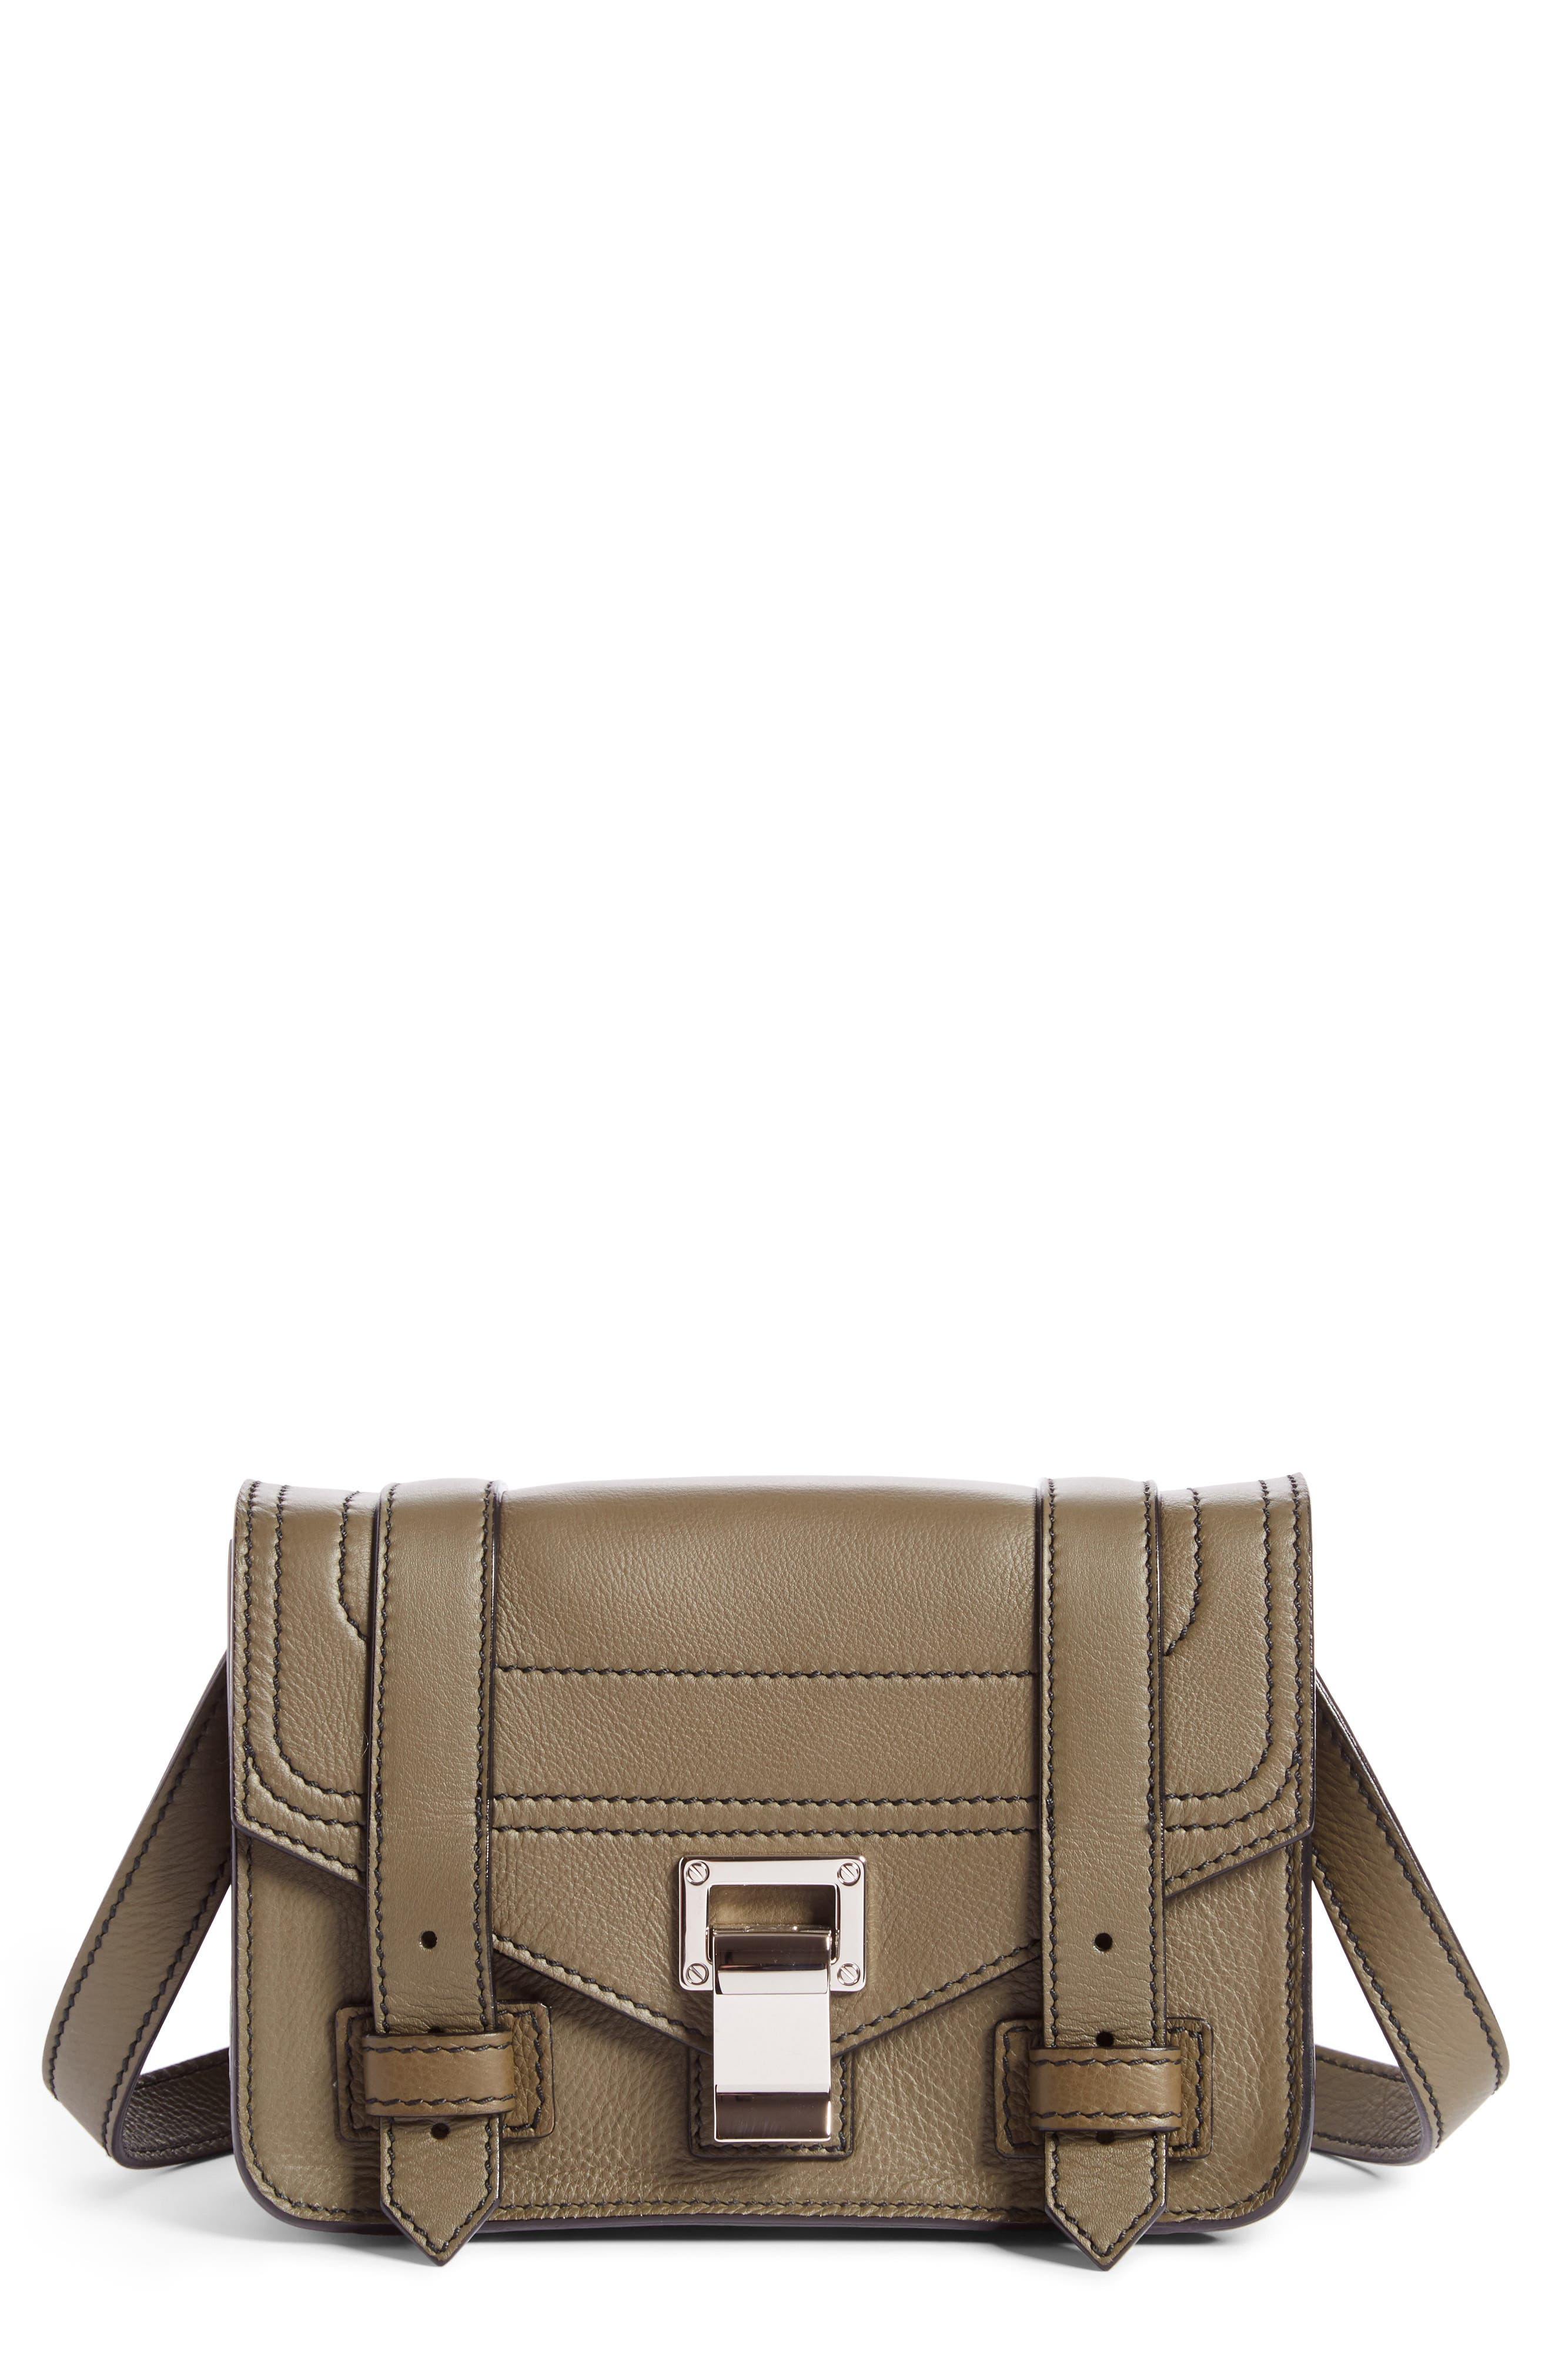 Proenza Schouler Mini PS1 Leather Crossbody Bag